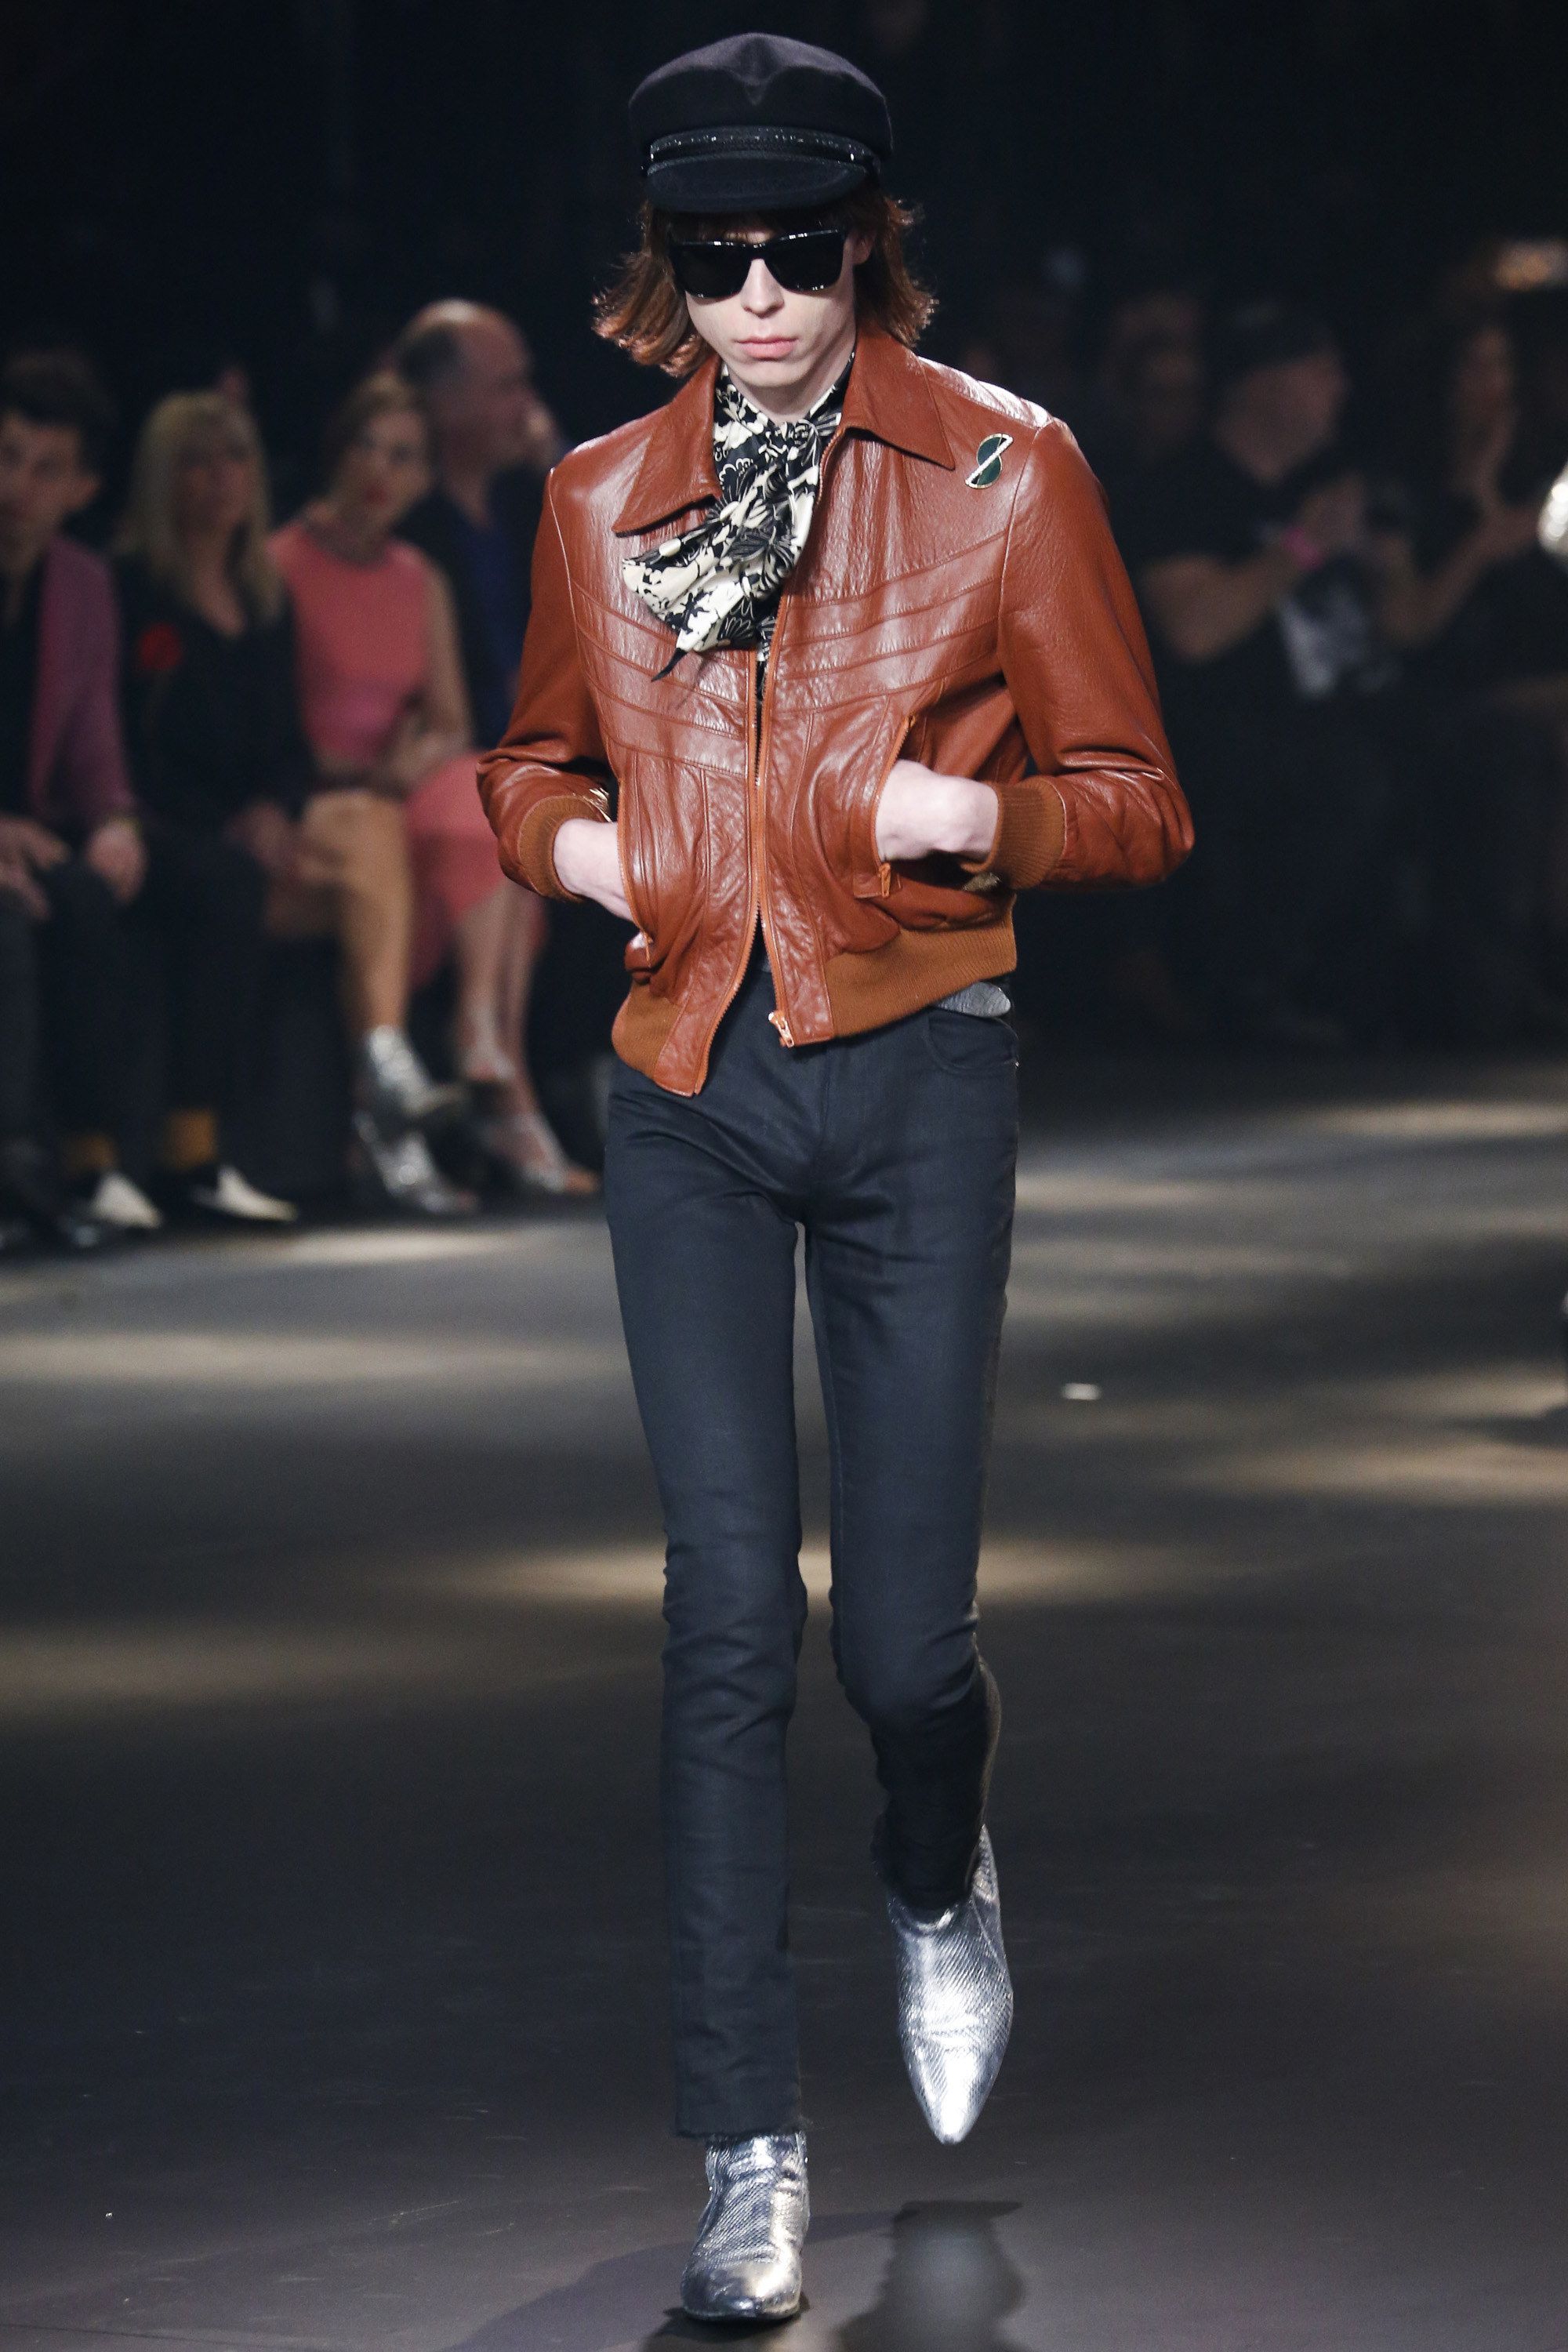 a0b5cbda423 Saint Laurent Fall 2016 Menswear Fashion Show | Menswear Fall 2016 ...